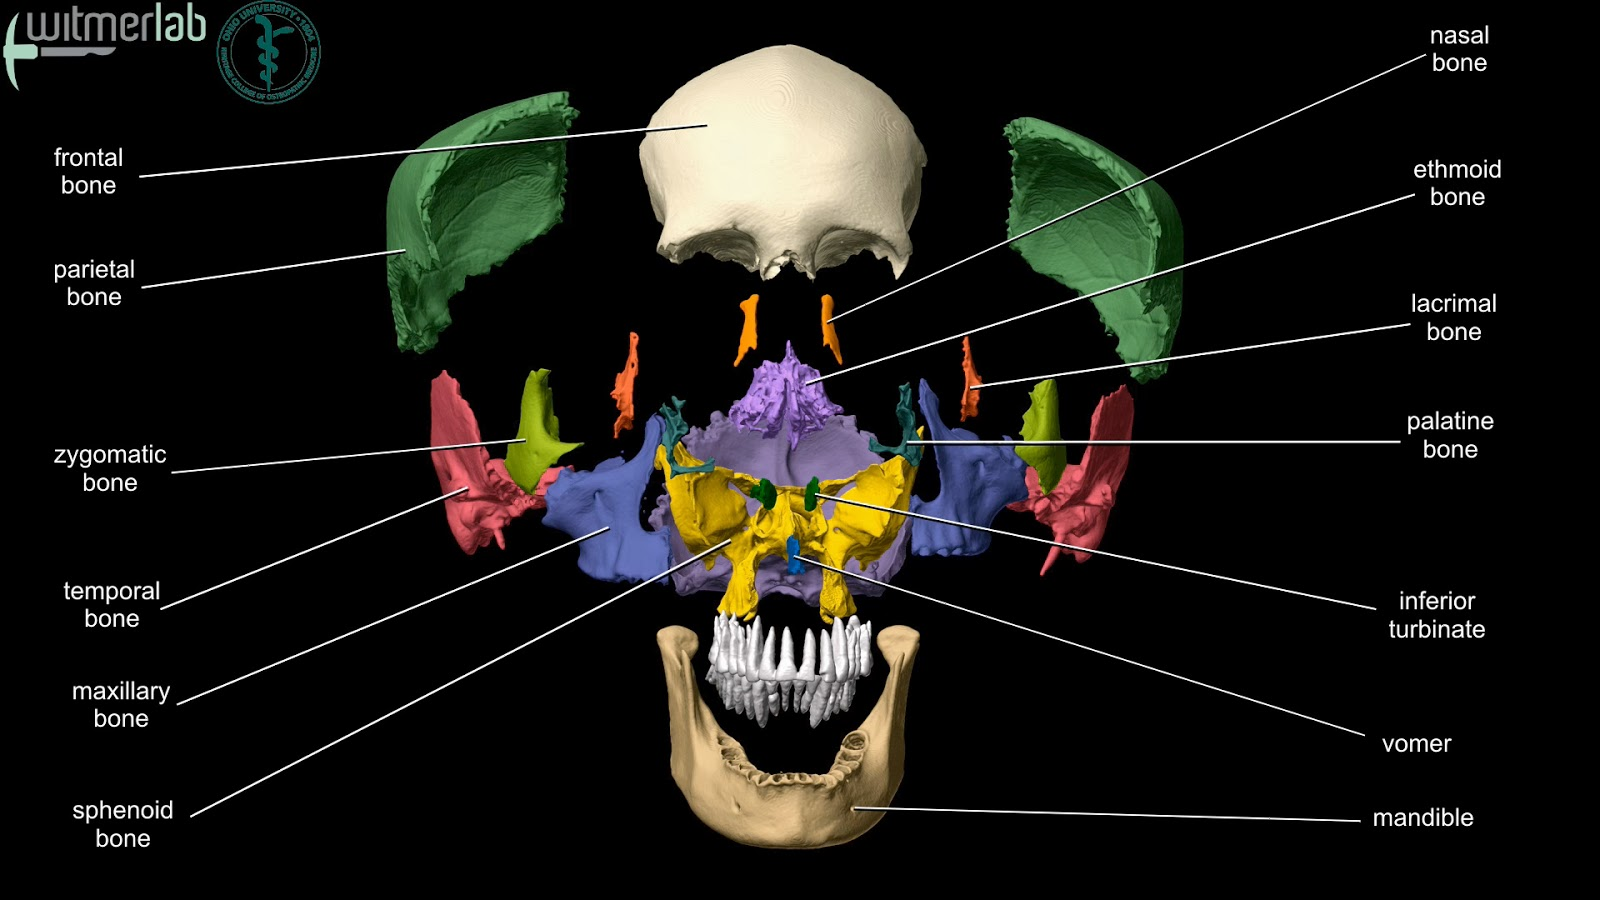 craniosacral therapy for dental work and tmj dysfunction